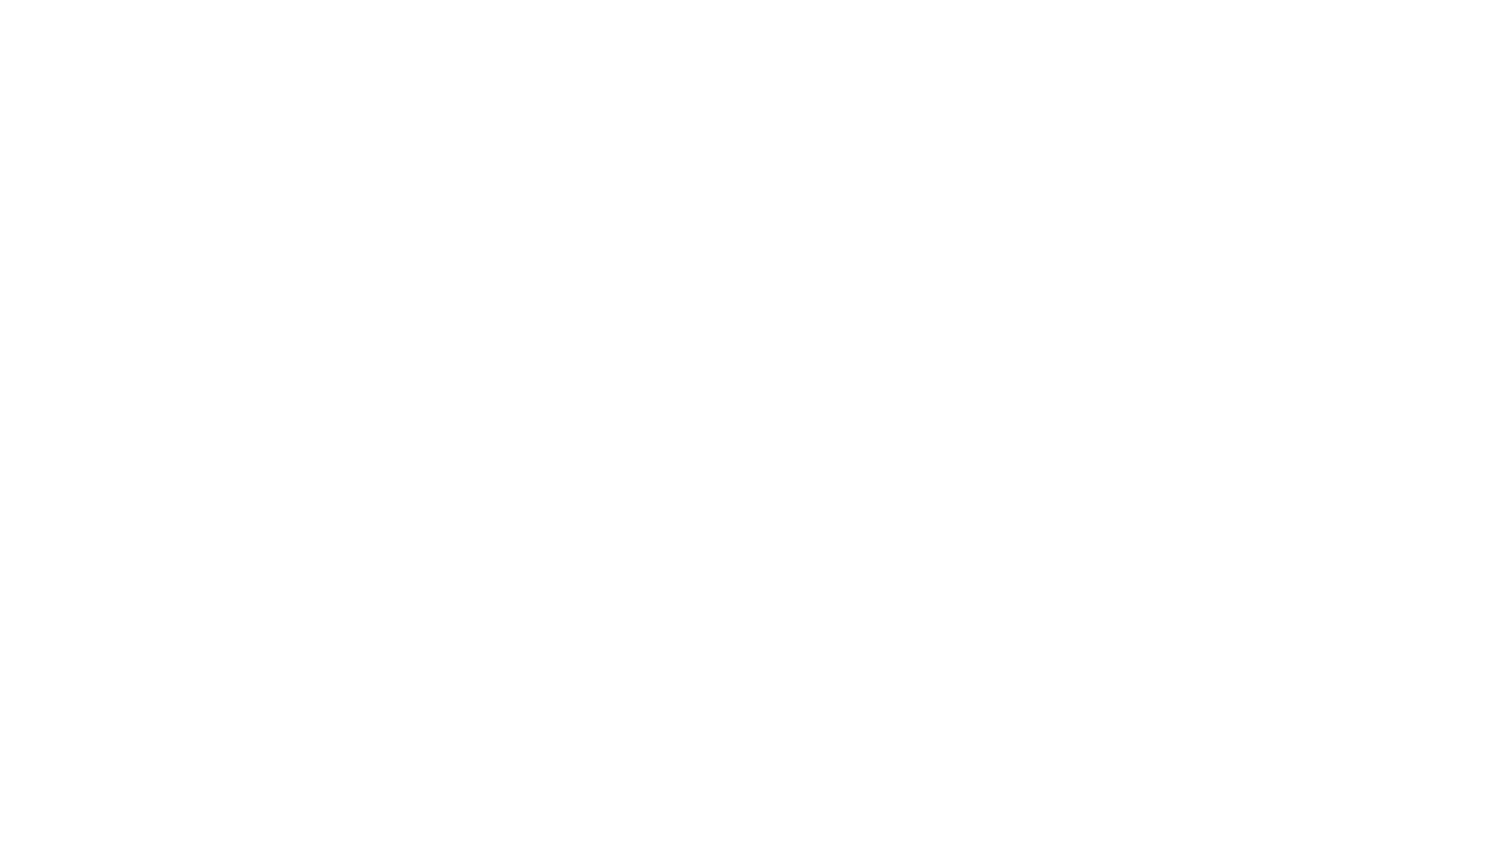 Hager Tribe